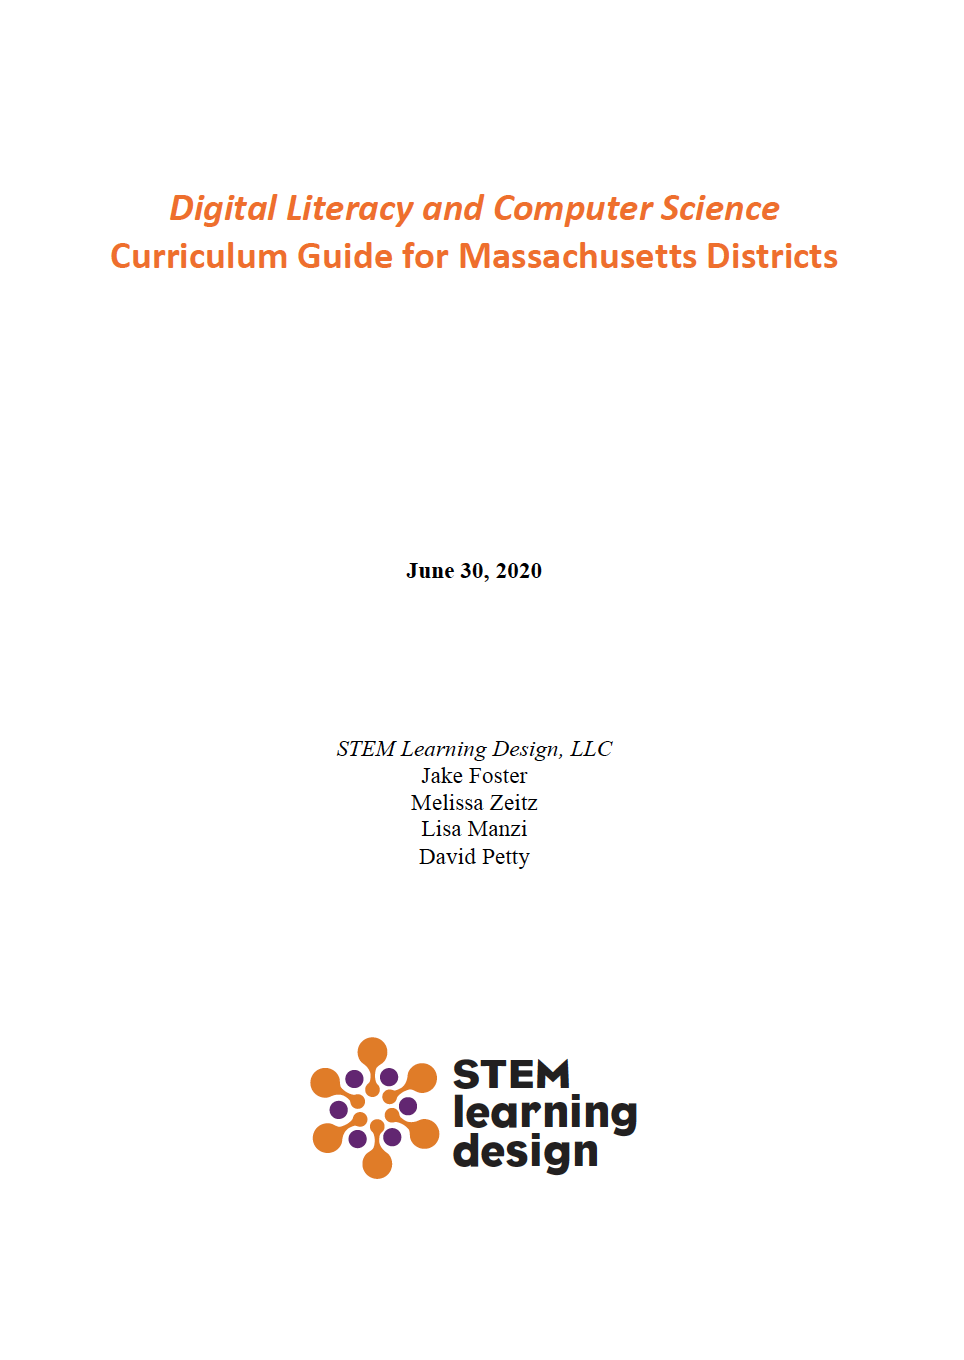 DLCS Curriculum Guide Cover 6-30-20